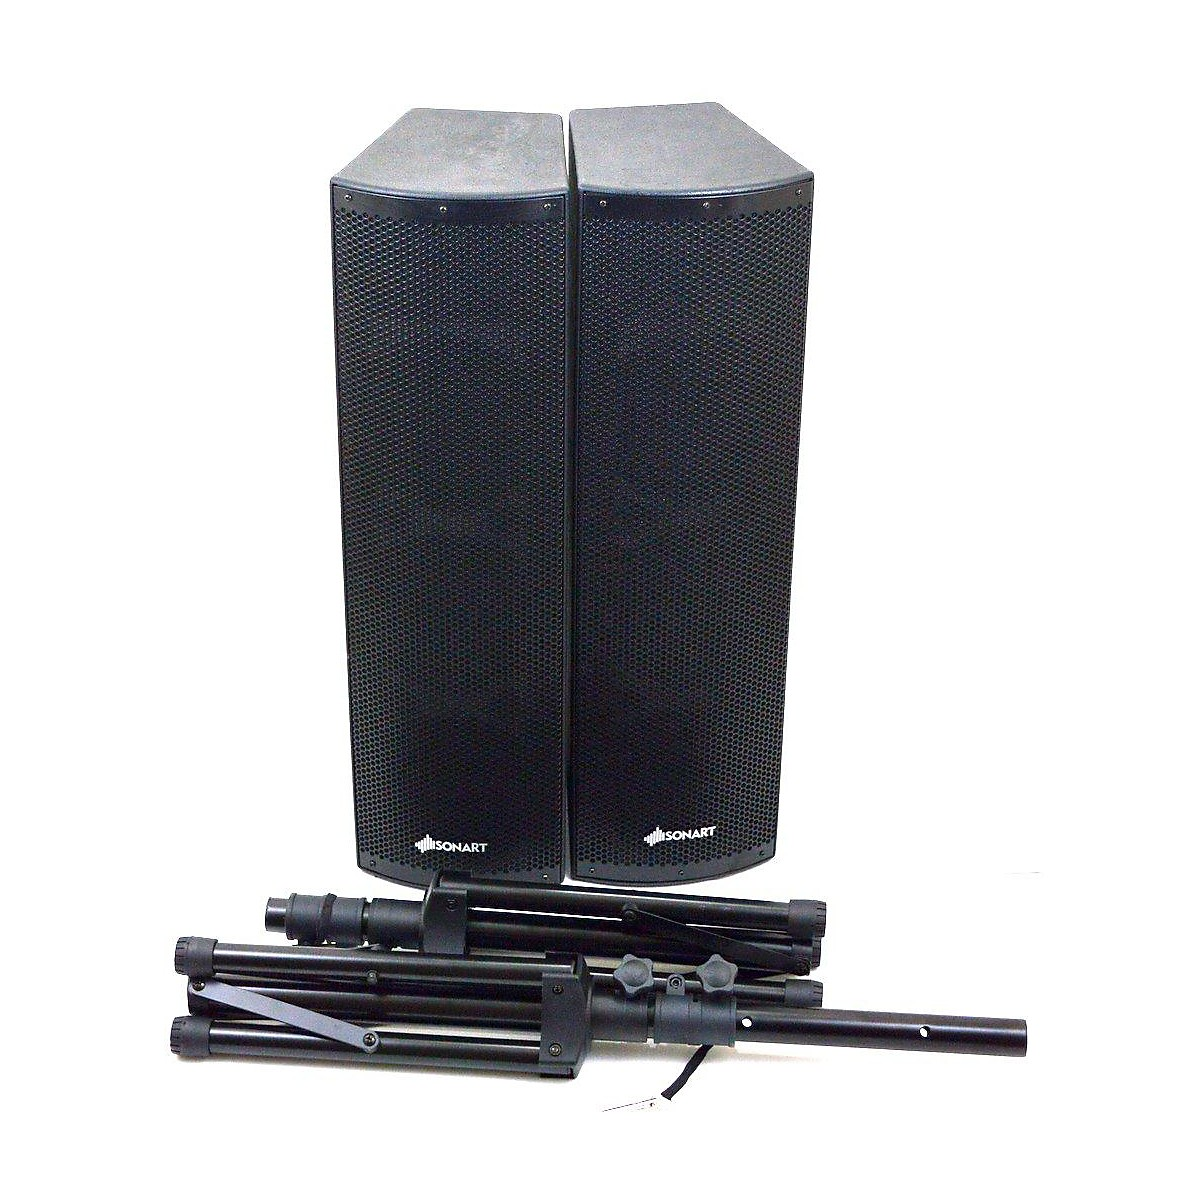 In Store Used Used Sonart PA System 2000w Powered Speaker